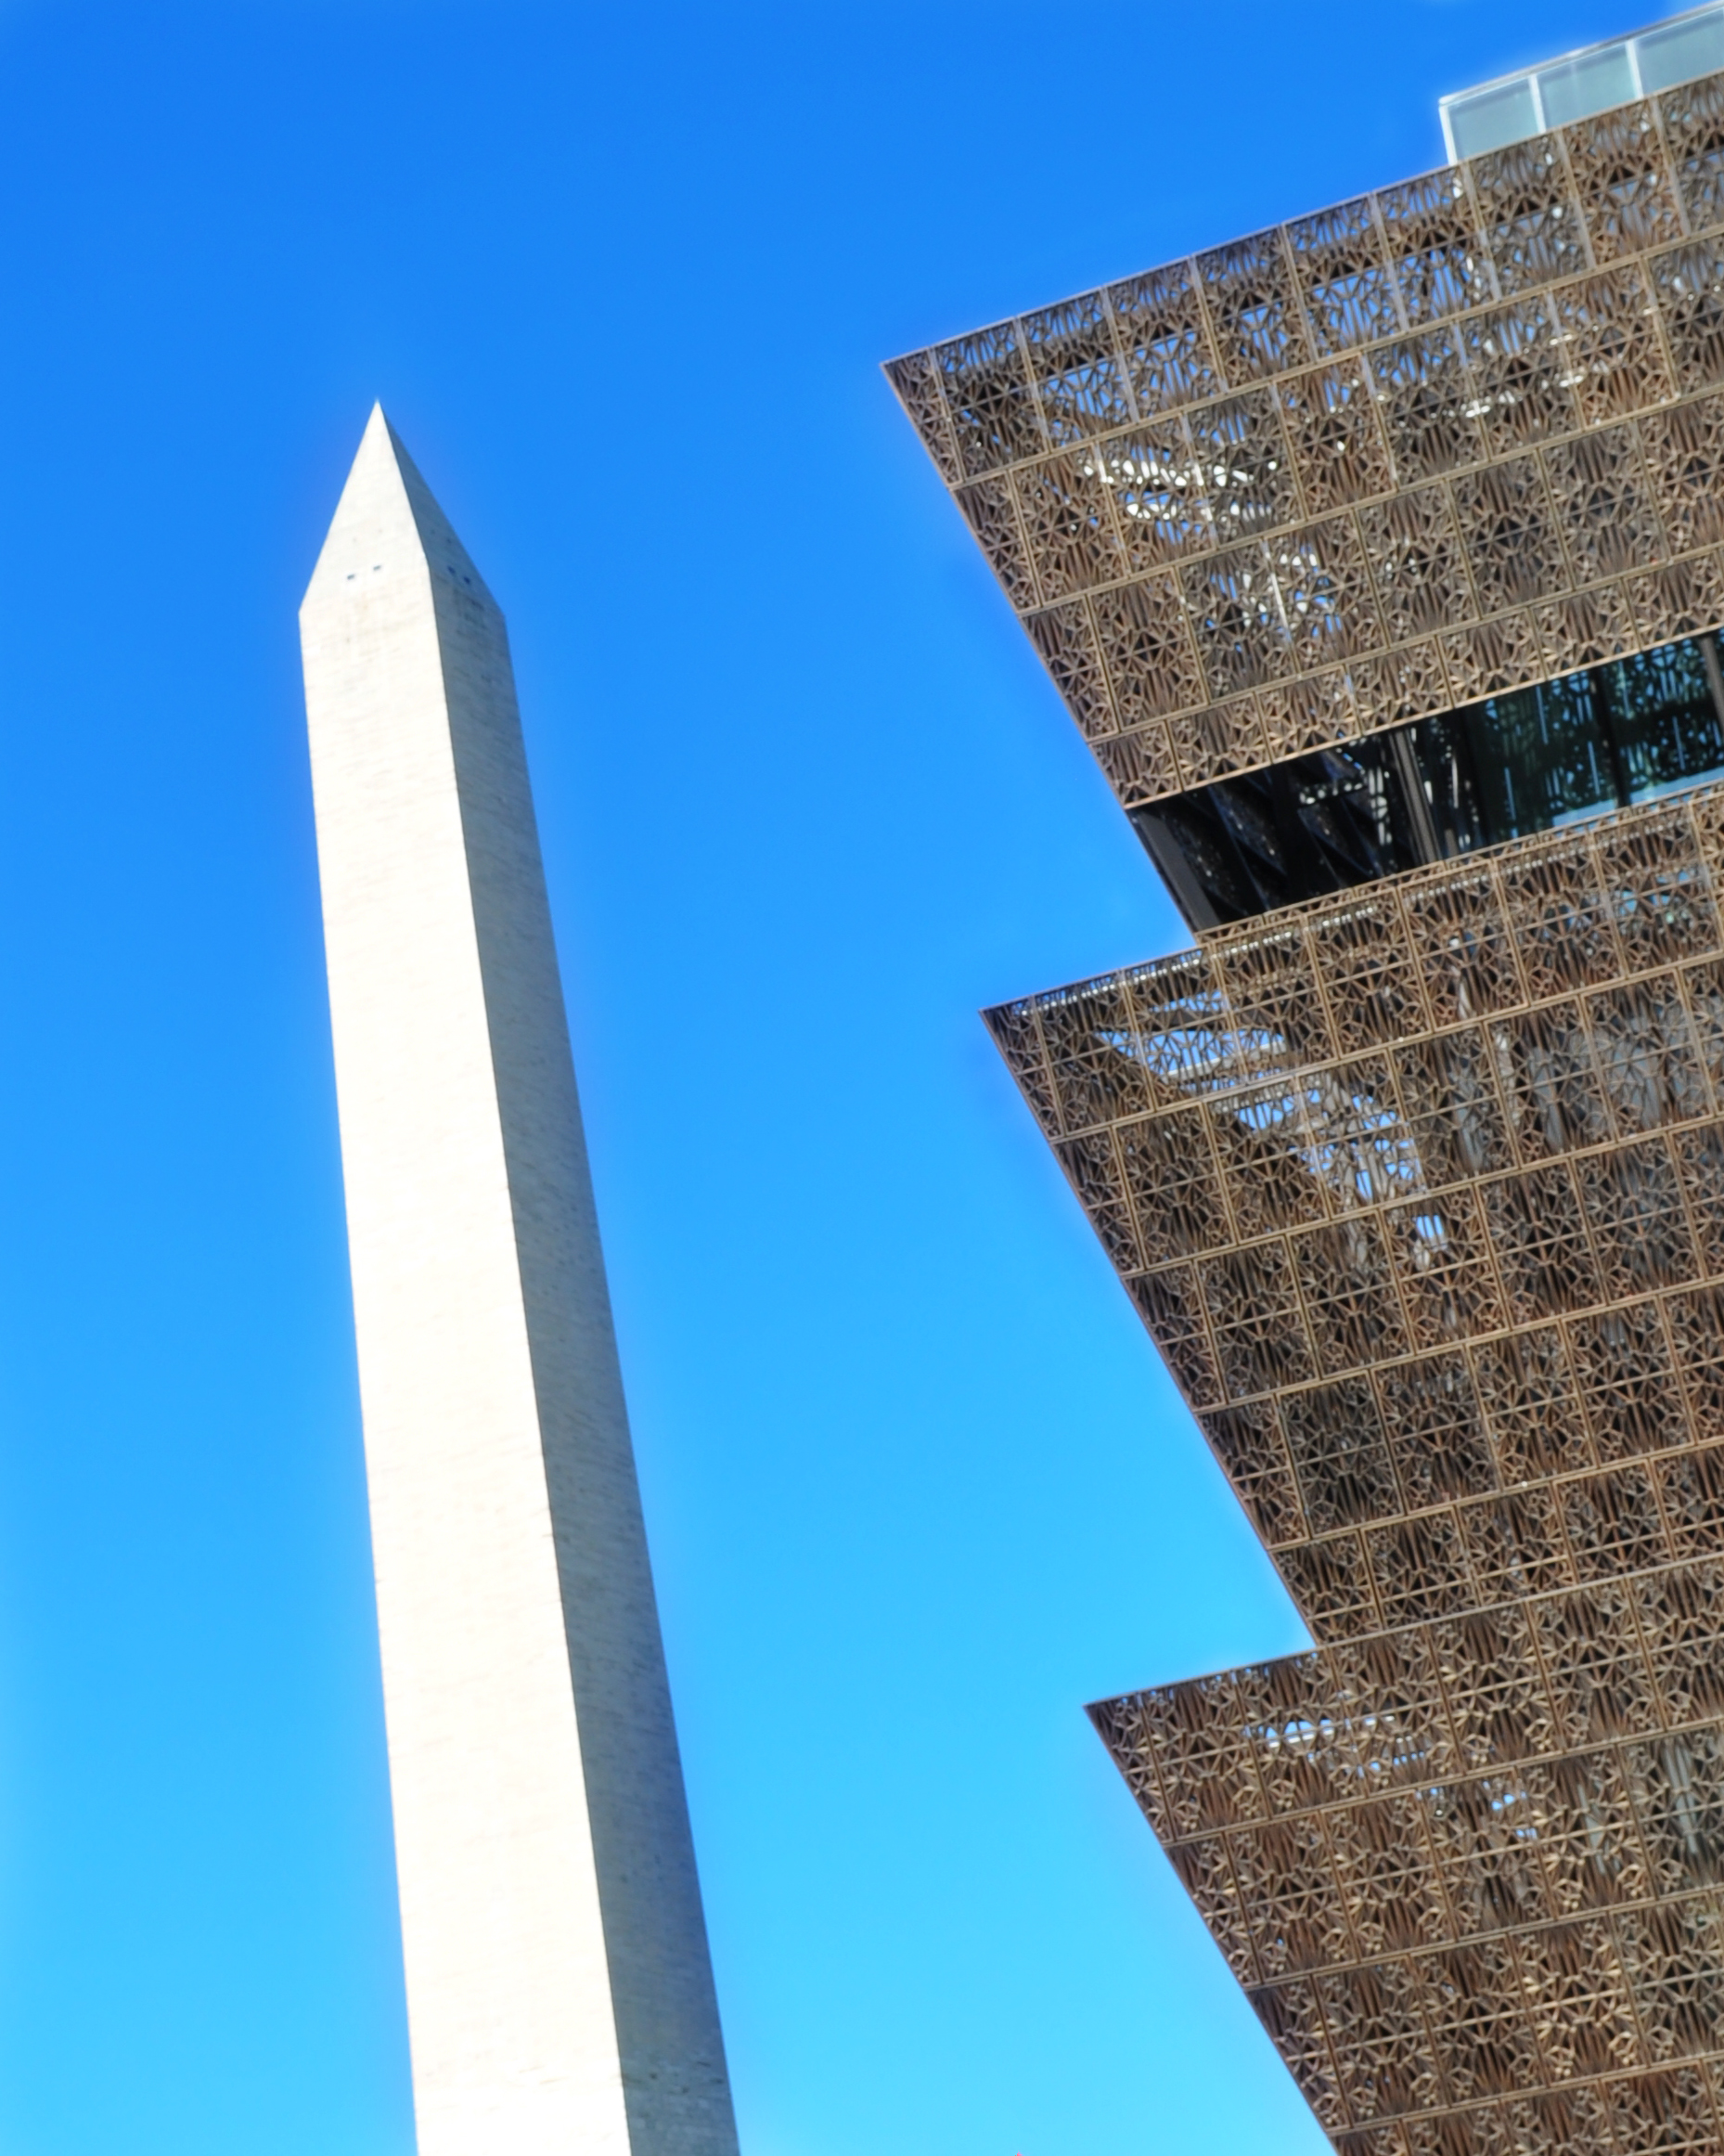 Museum at an angle with Washington Monument in background